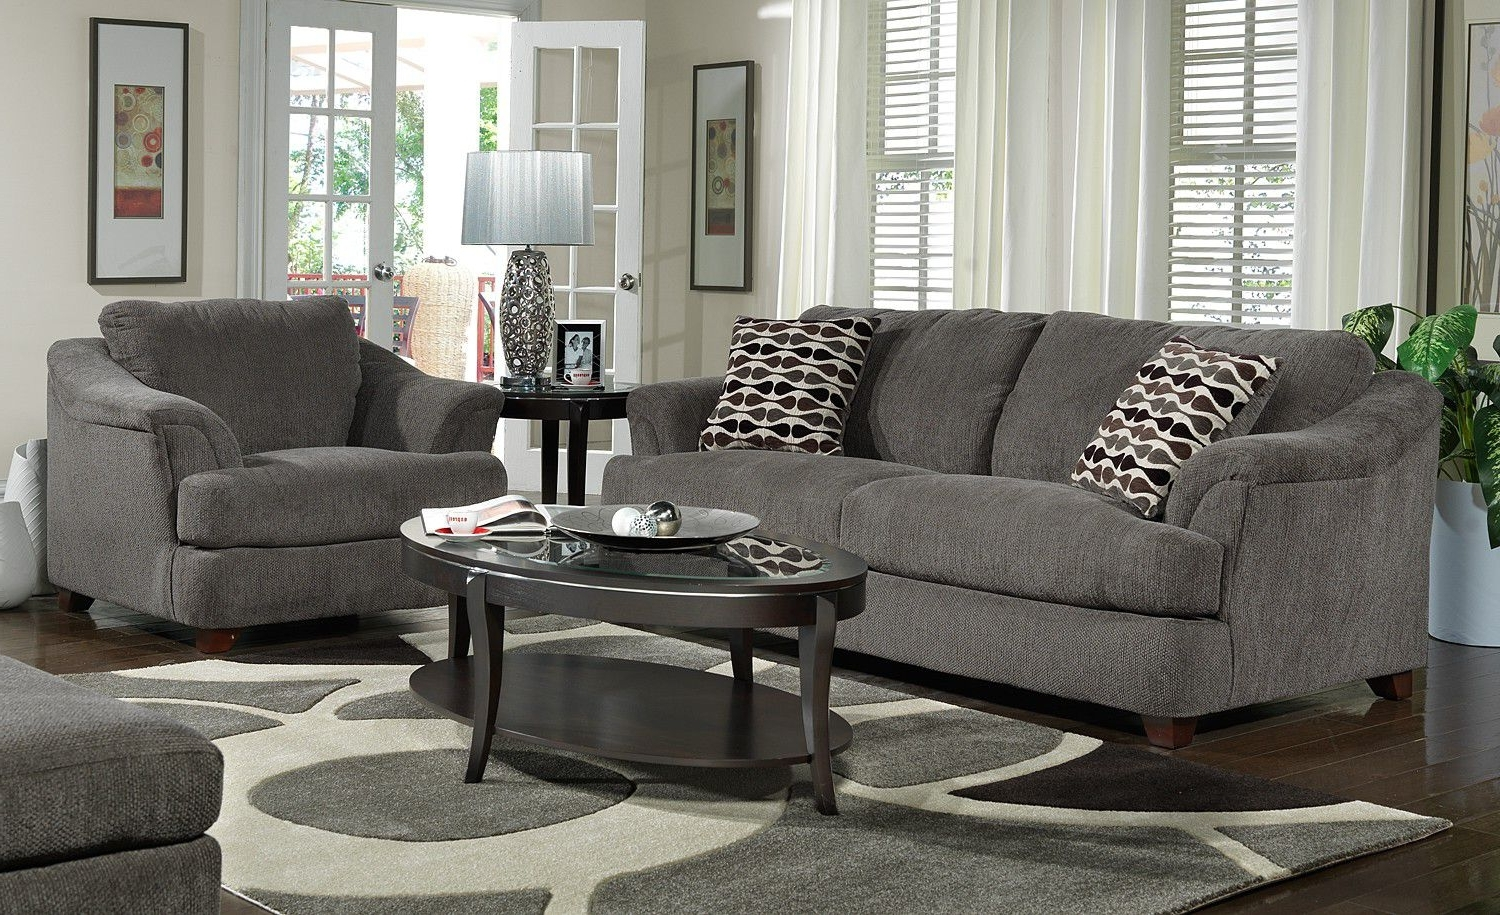 Living Room Design : Living Room Susan Design Ideas Grey Sofa Inside 2019 Grey Sofa Chairs (View 12 of 20)